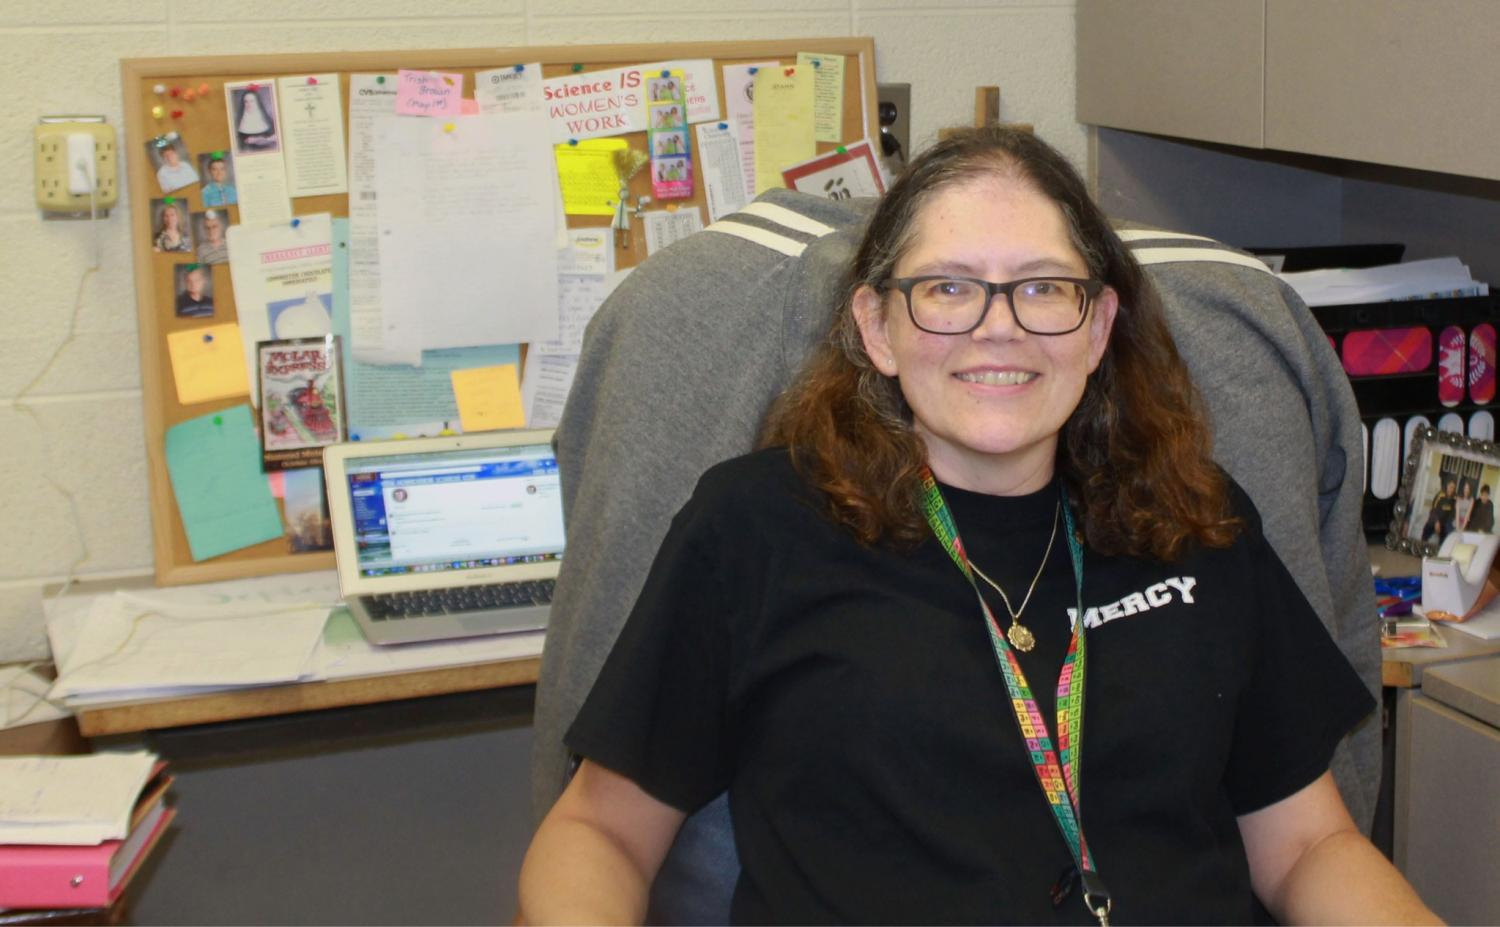 Lisa Schrimscher teaches both math and science at Mercy, but runs a side embroidery business with a long-time friend.